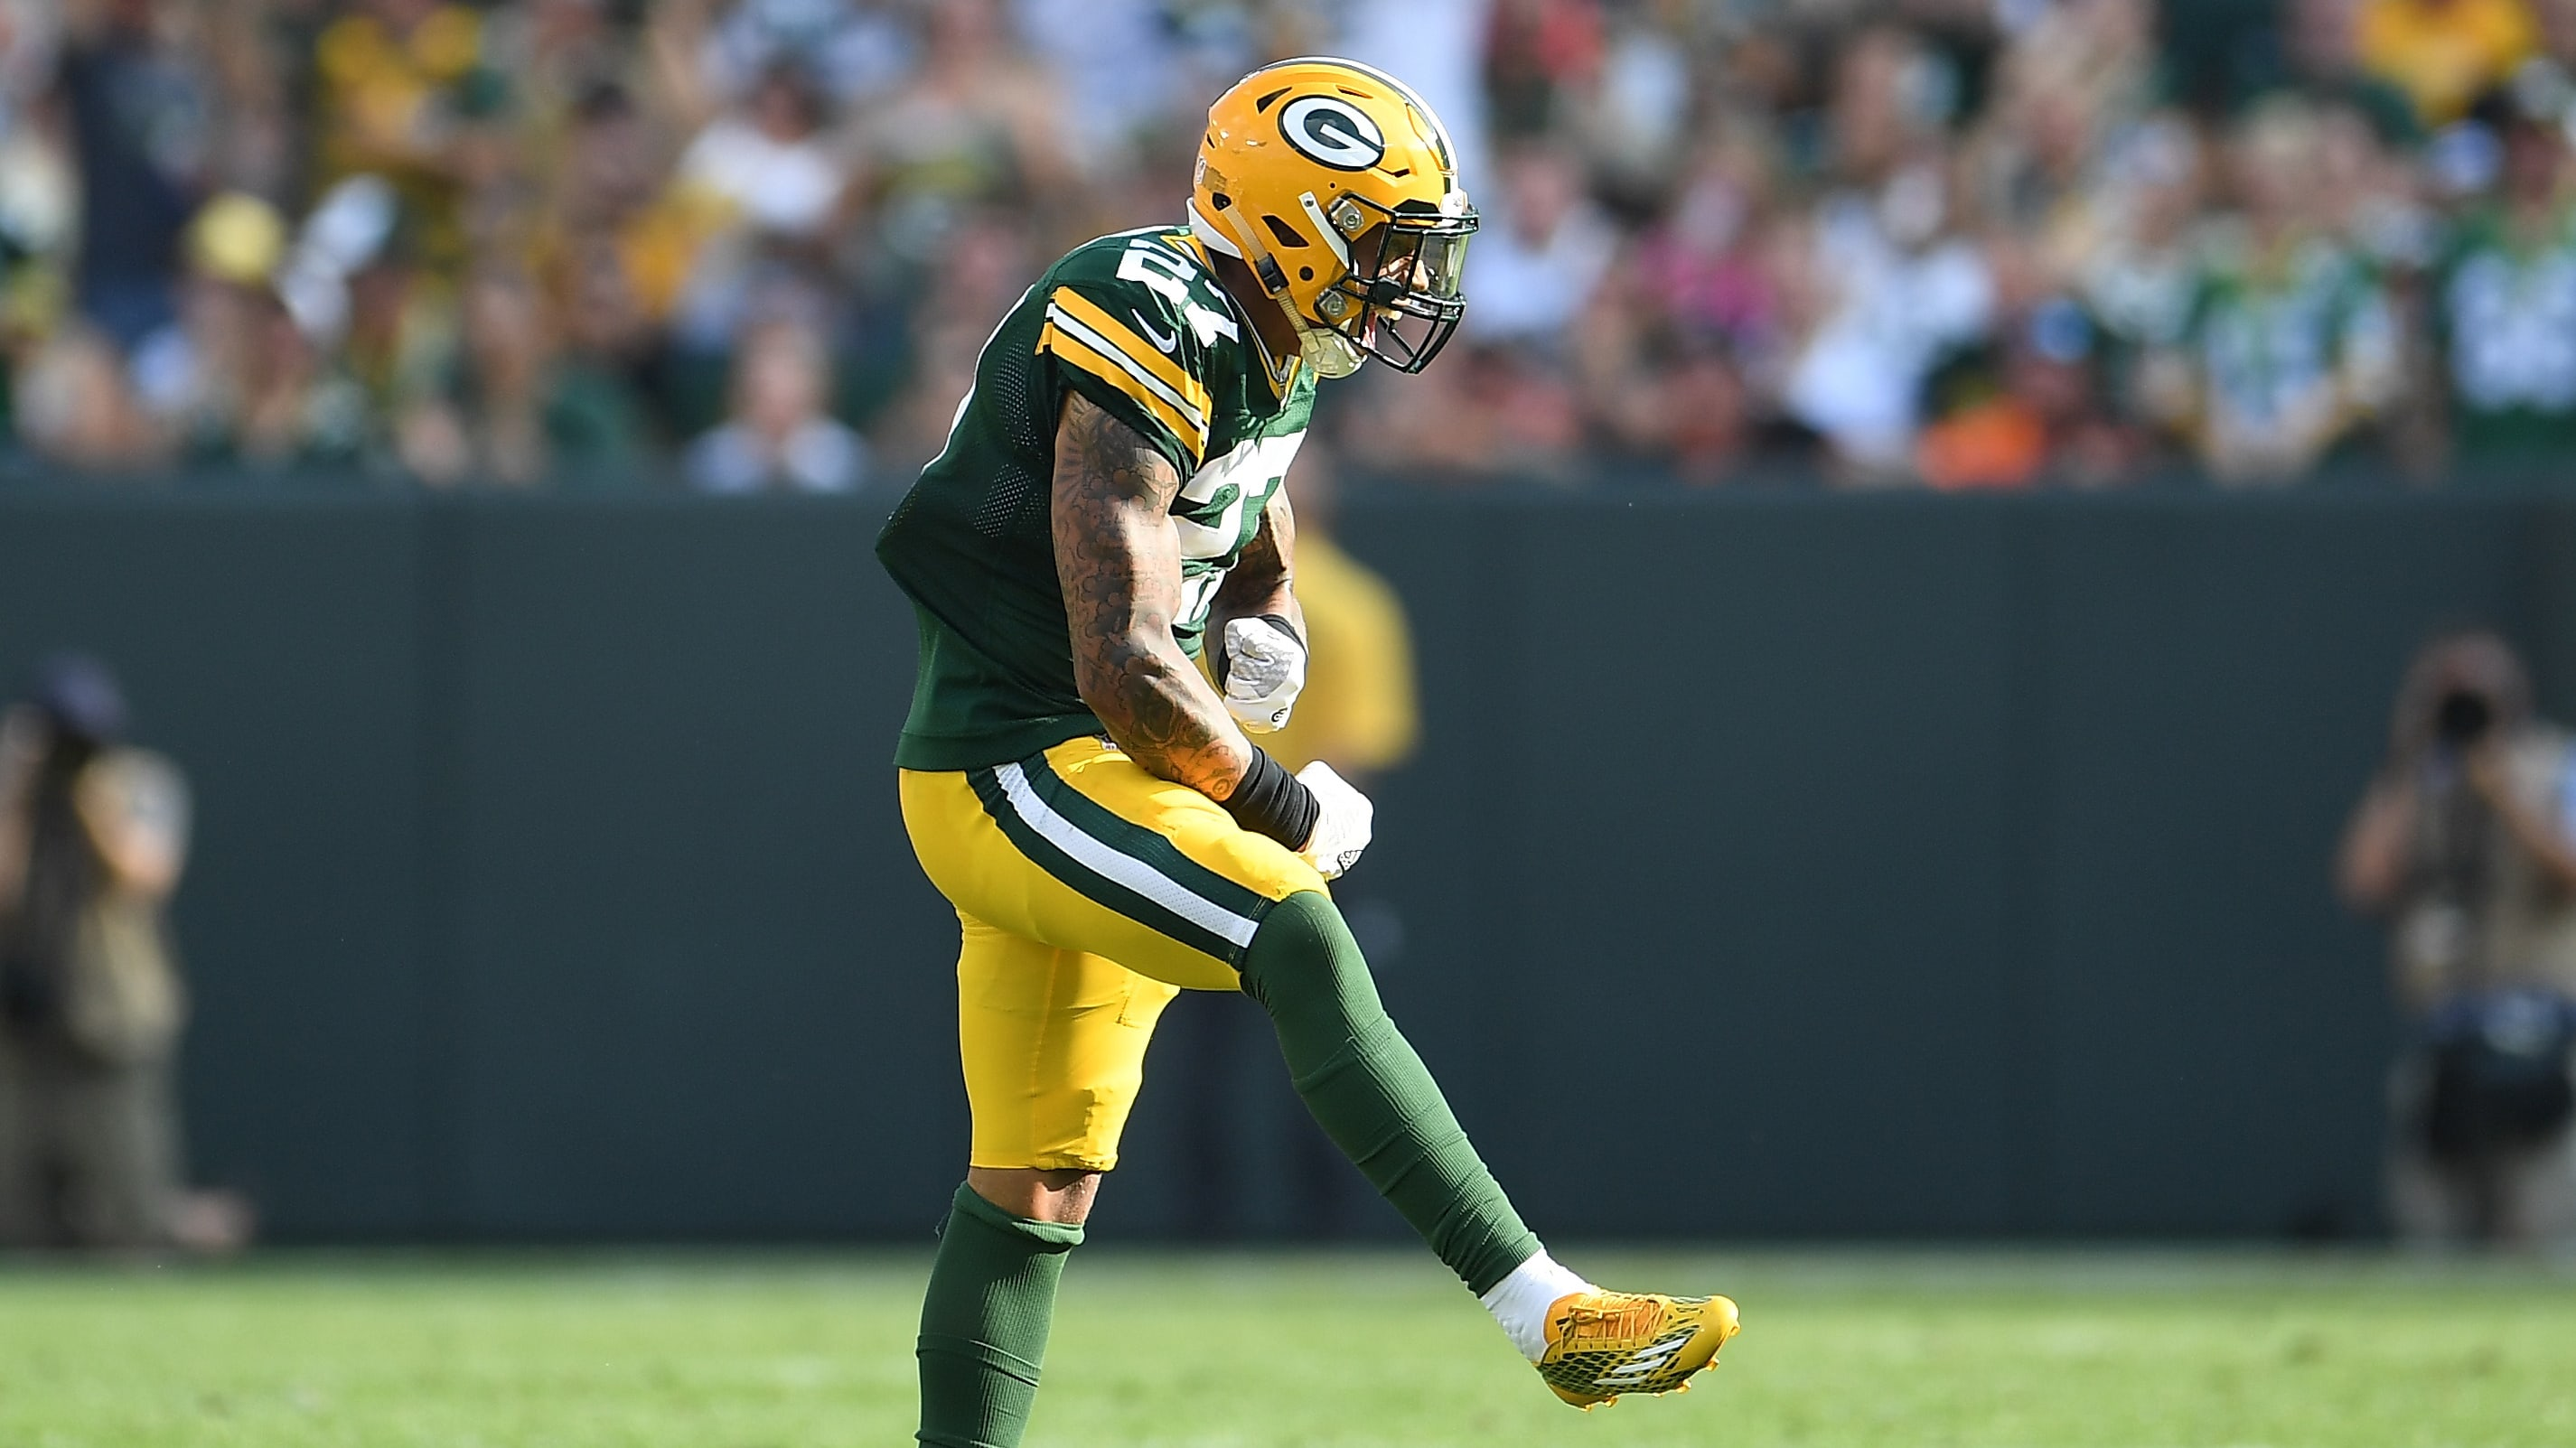 GREEN BAY, WI - SEPTEMBER 24:  Josh Jones #27 of the Green Bay Packers reacts after a sack during the first quarter against the Cincinnati Bengals at Lambeau Field on September 24, 2017 in Green Bay, Wisconsin.  (Photo by Stacy Revere/Getty Images)